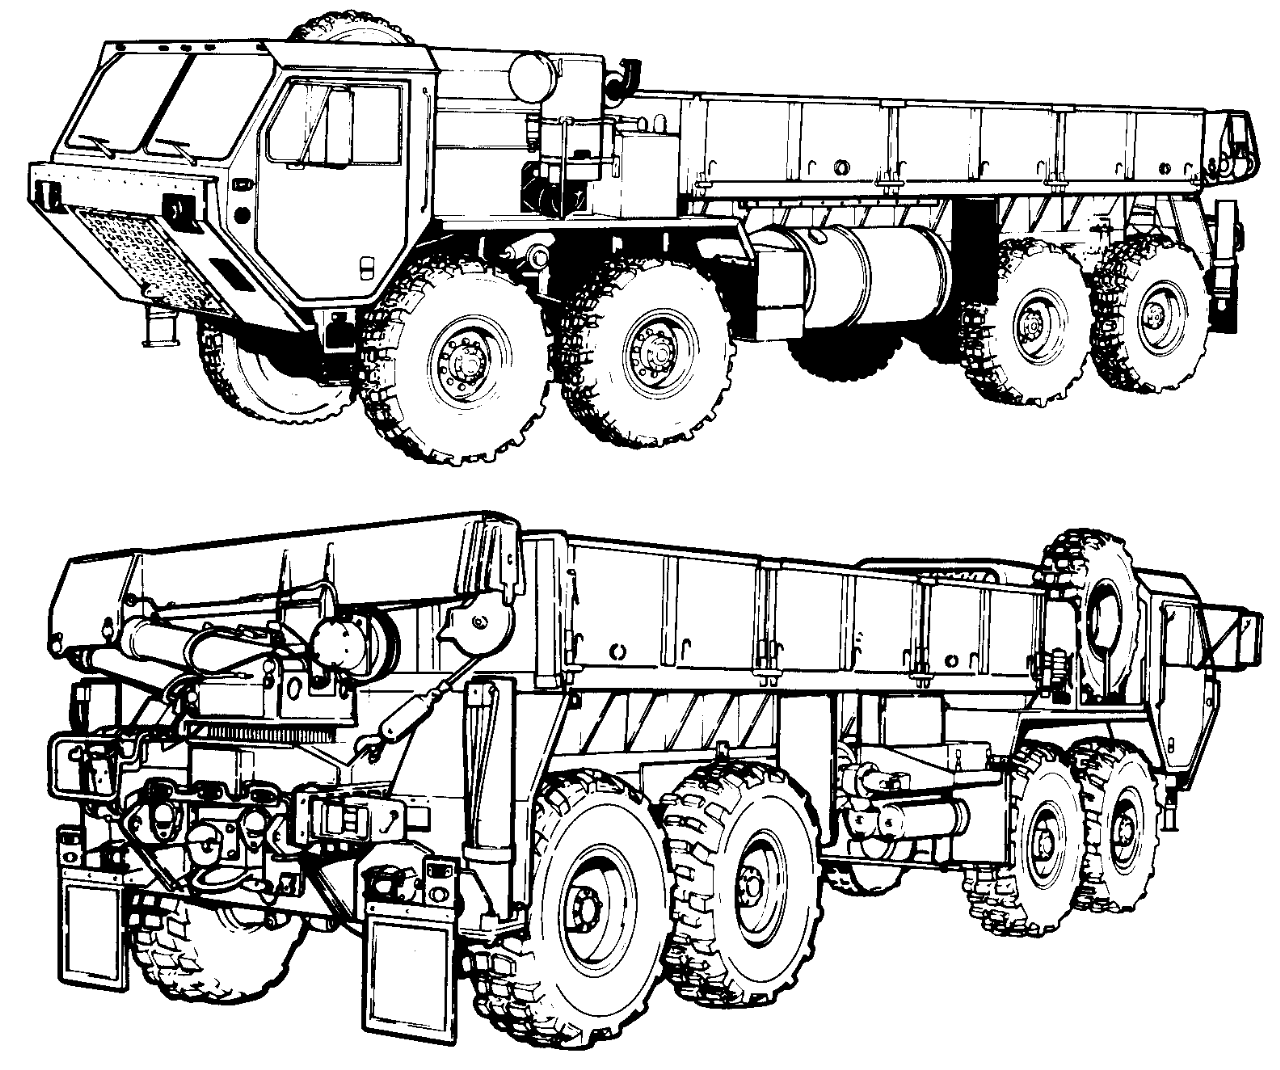 1280x1070 M977 Heavy Expanded Mobility Tactical Truck (Hemtt)